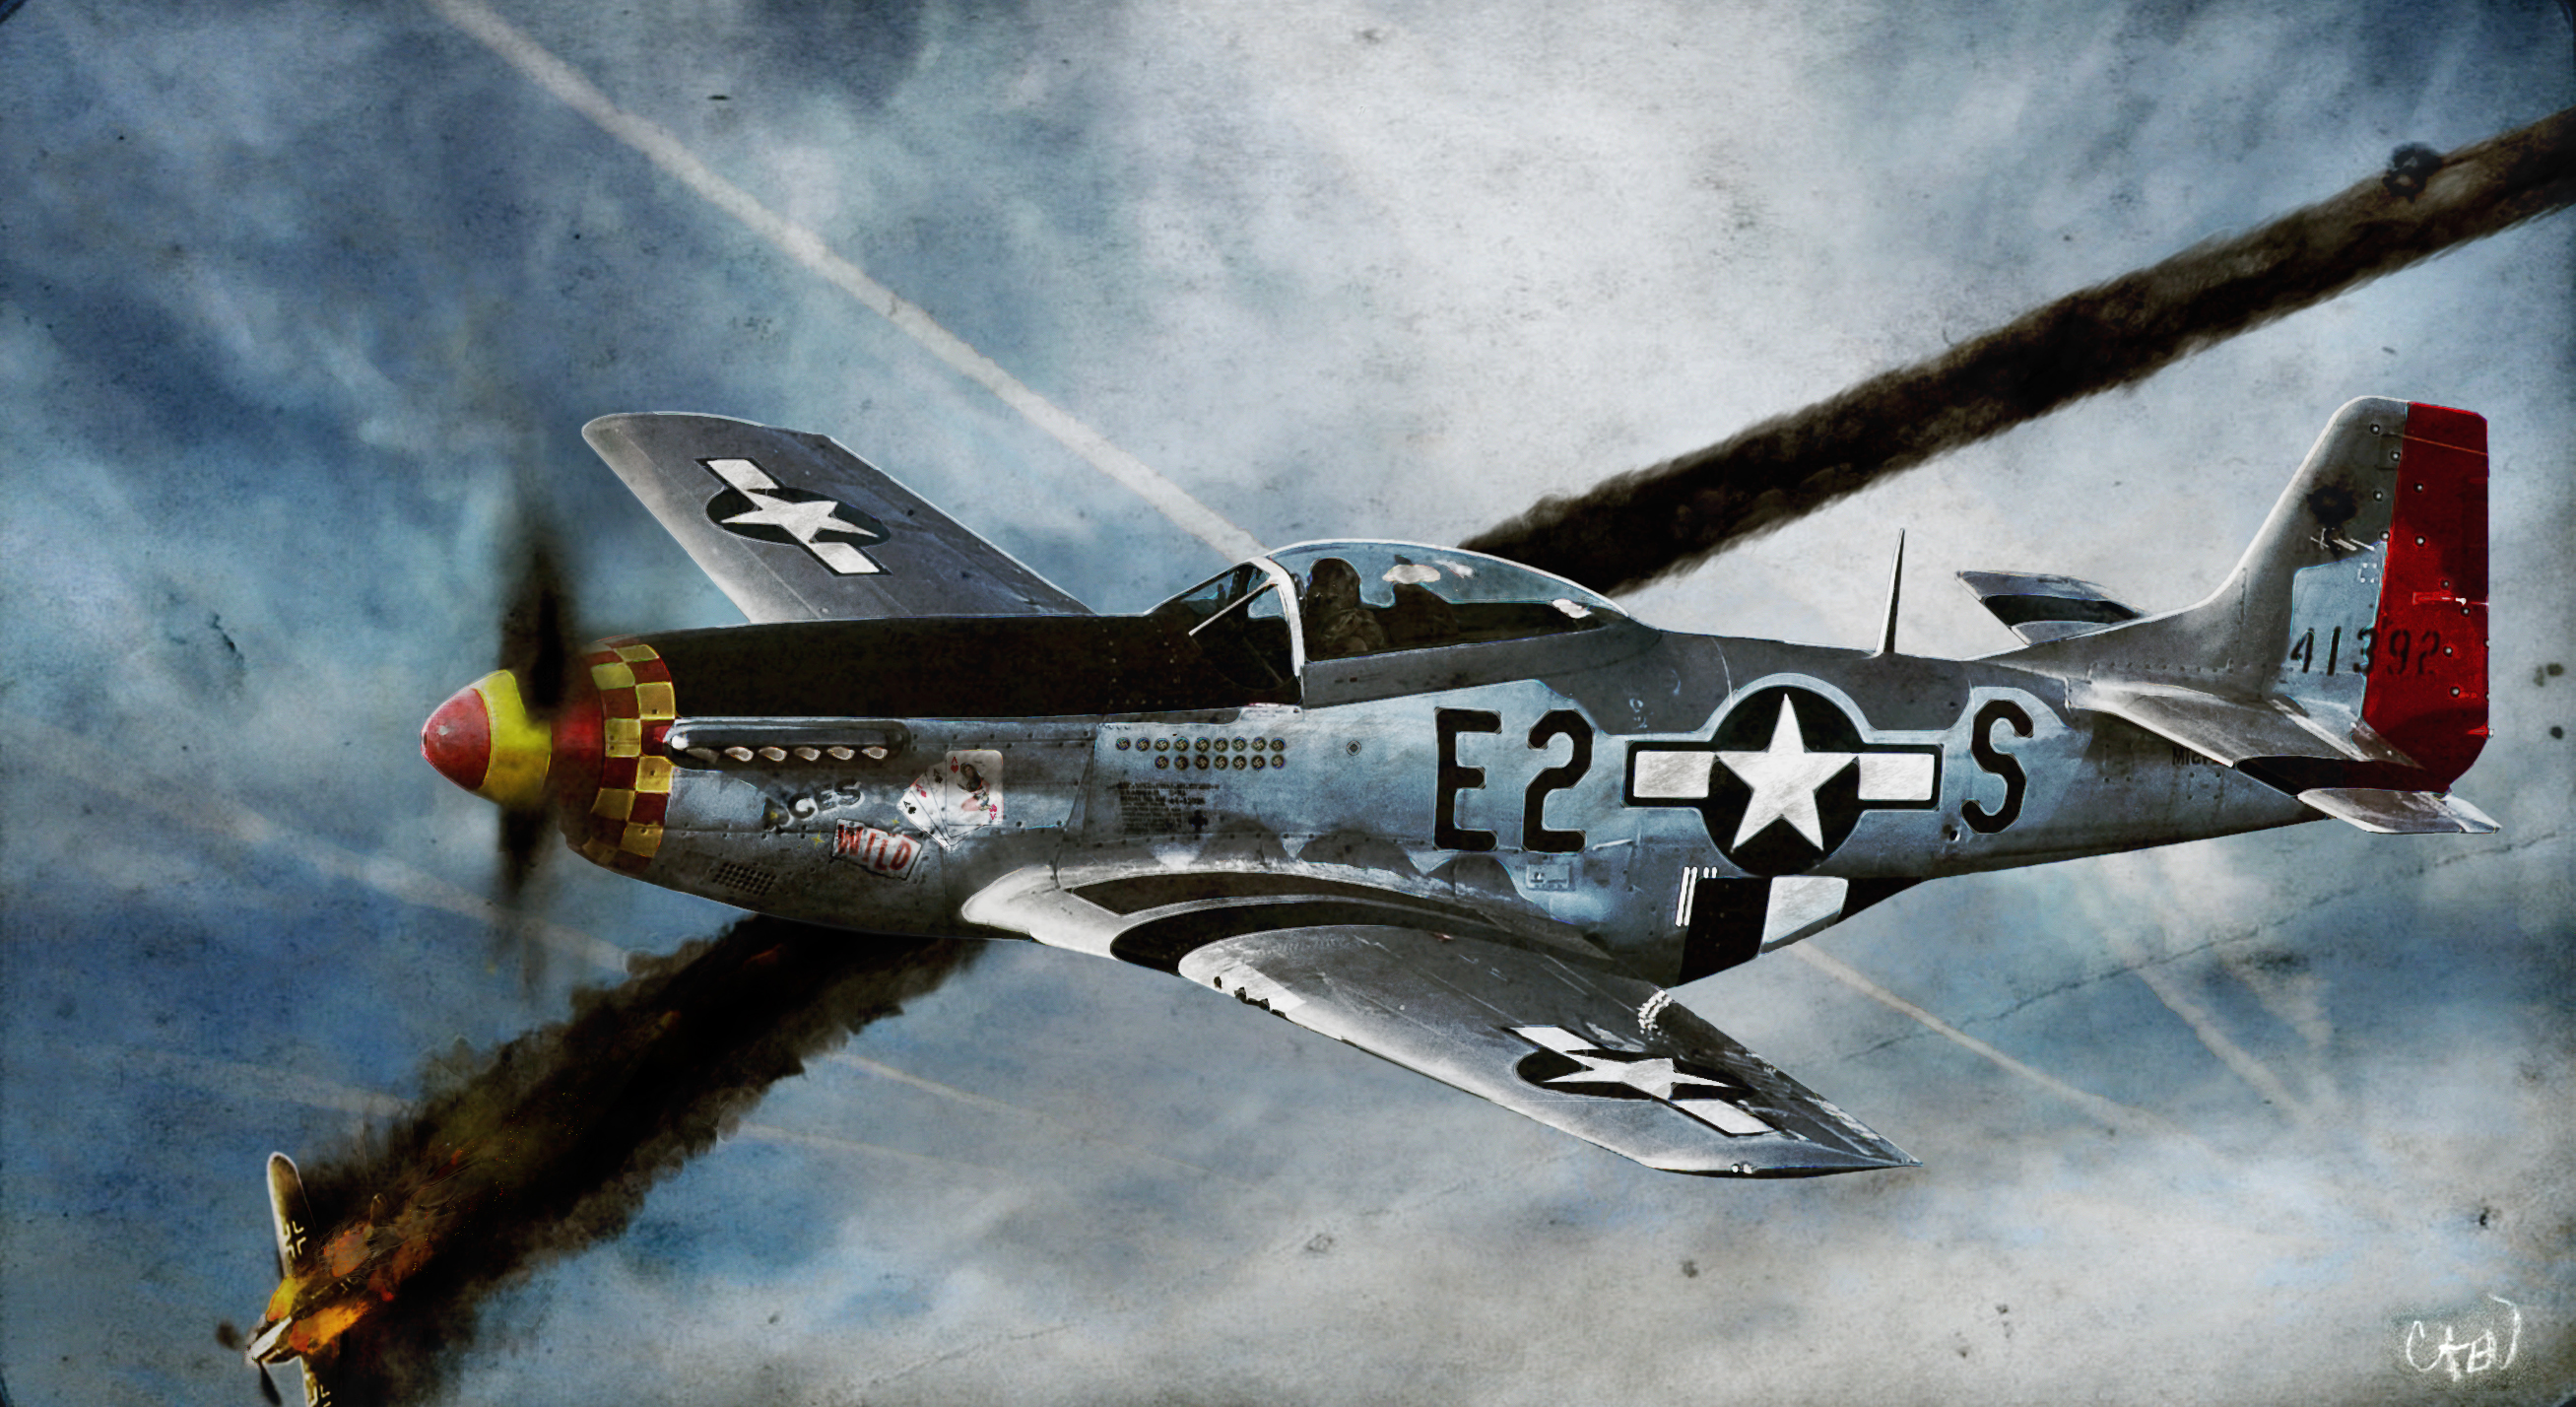 P 51 Mustang Wallpaper North American P-51 Mu...